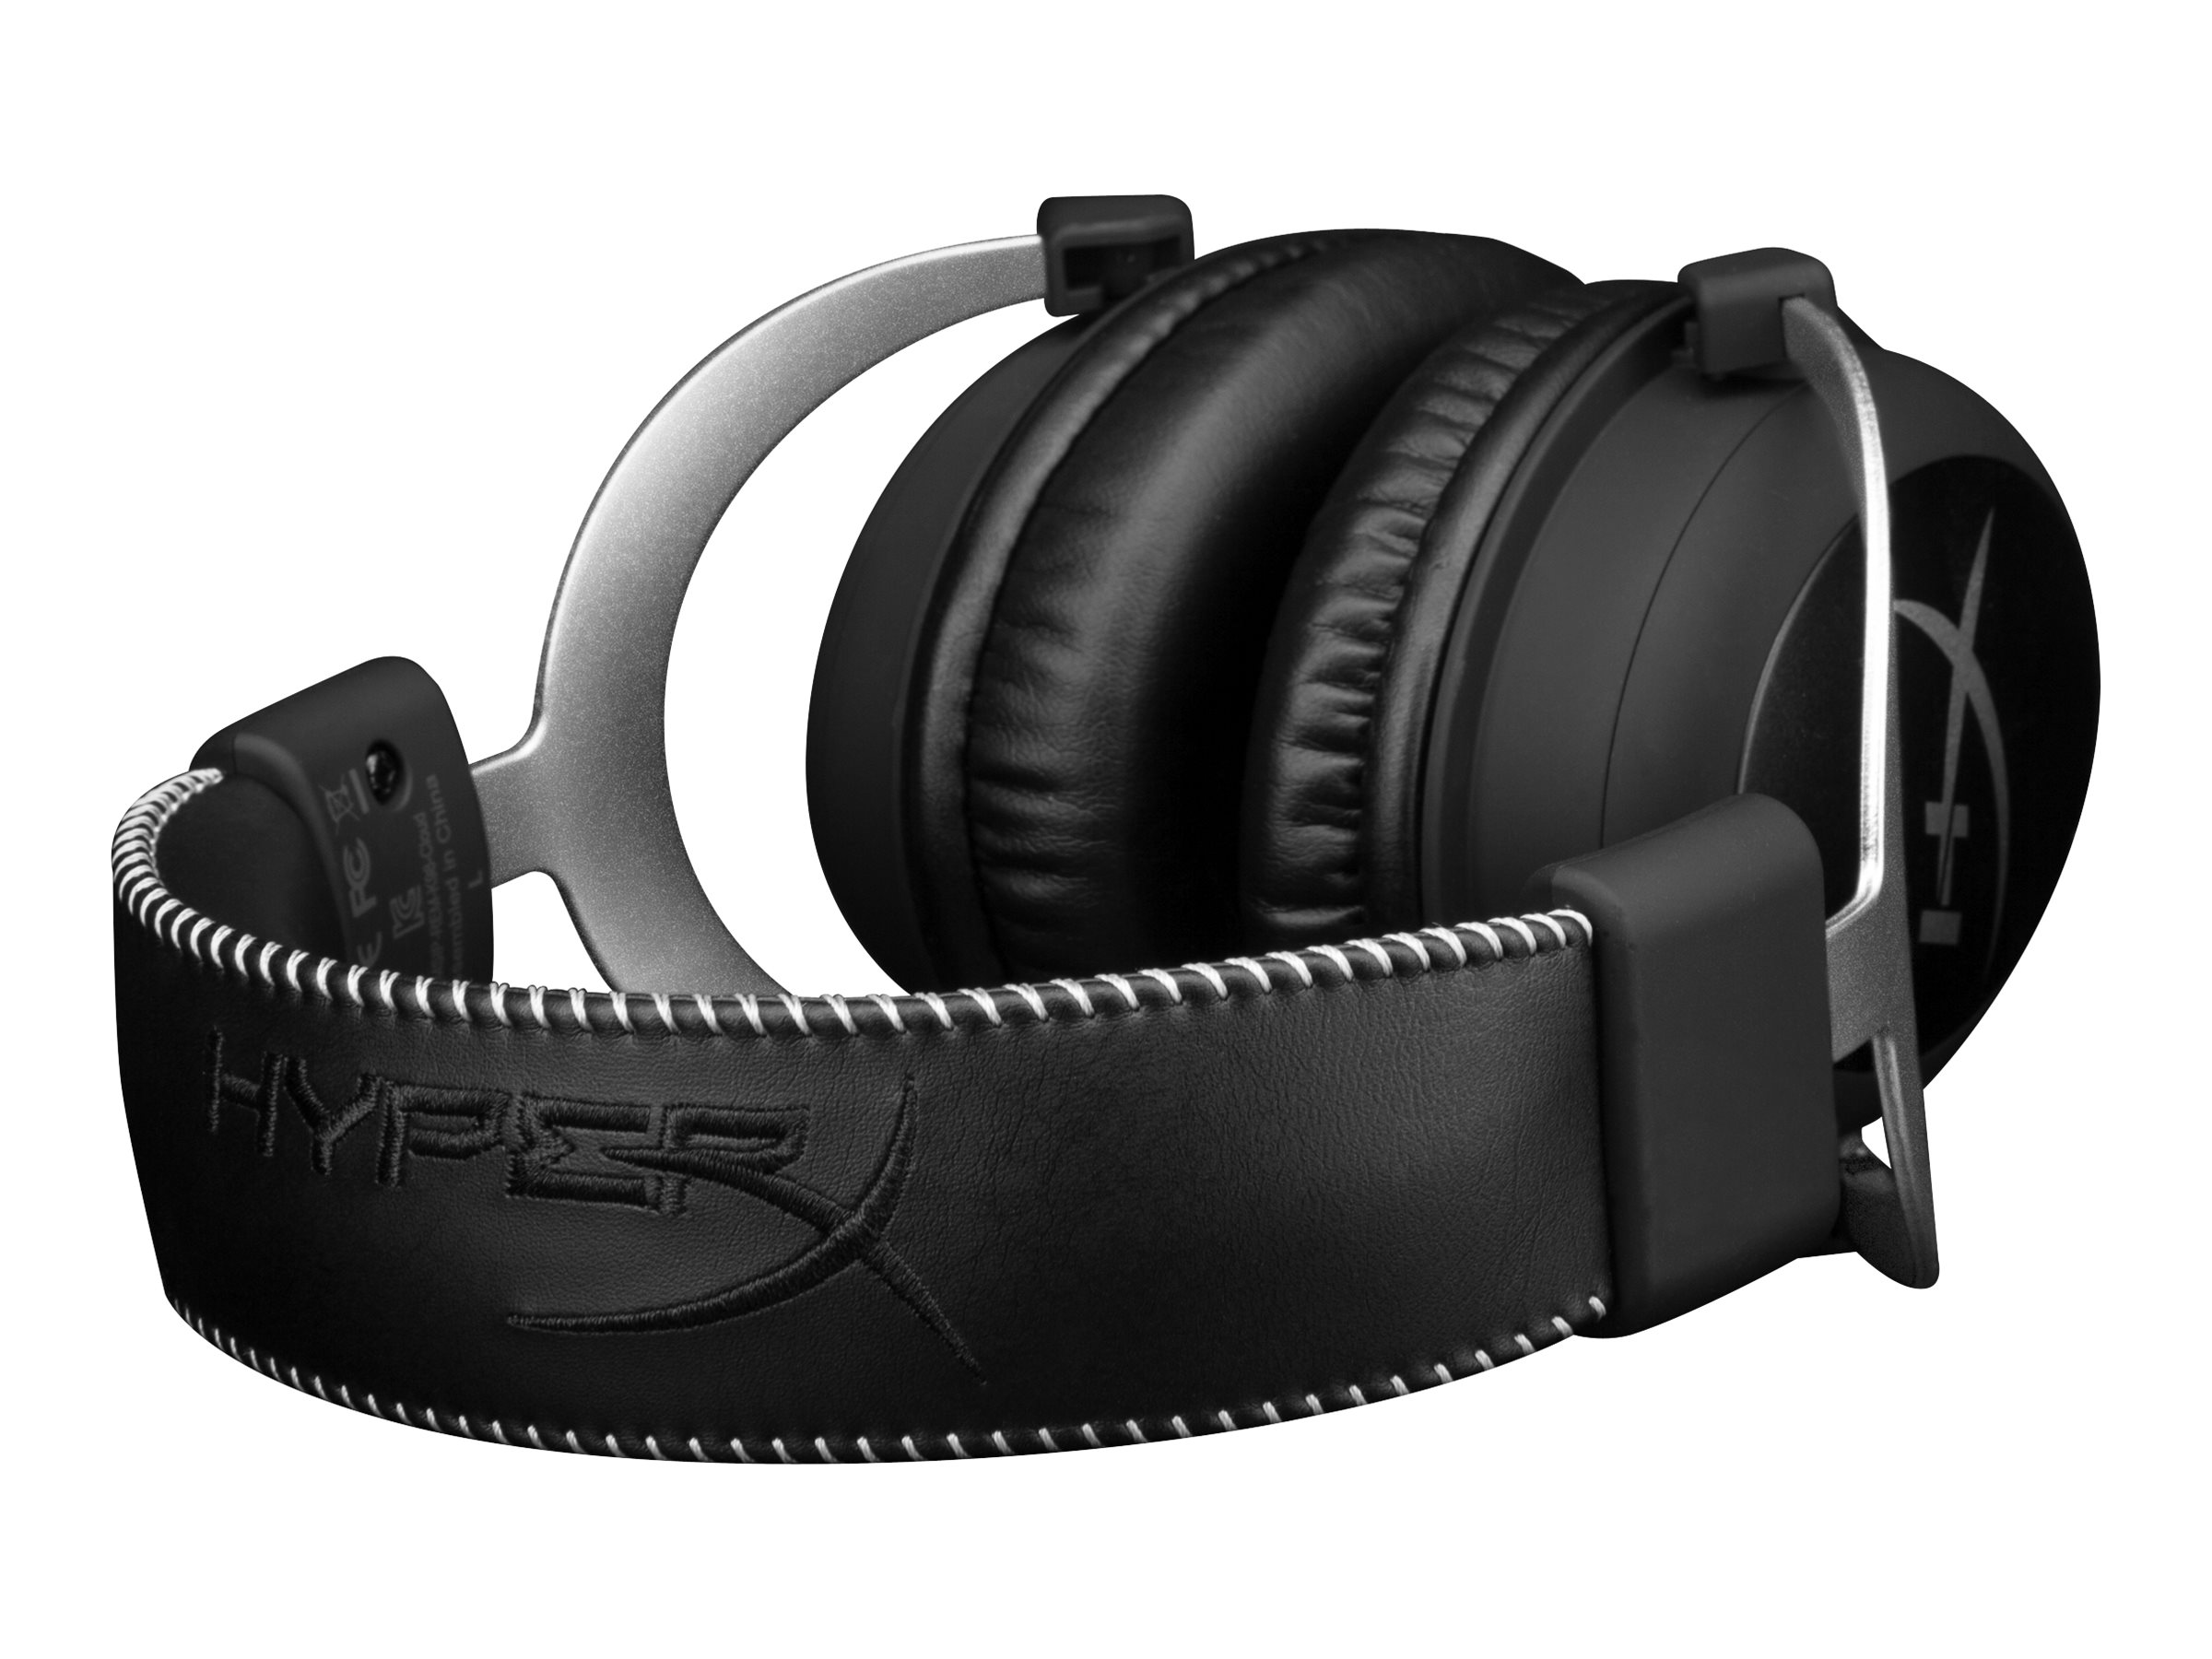 HyperX CloudX - Headset - Full-Size